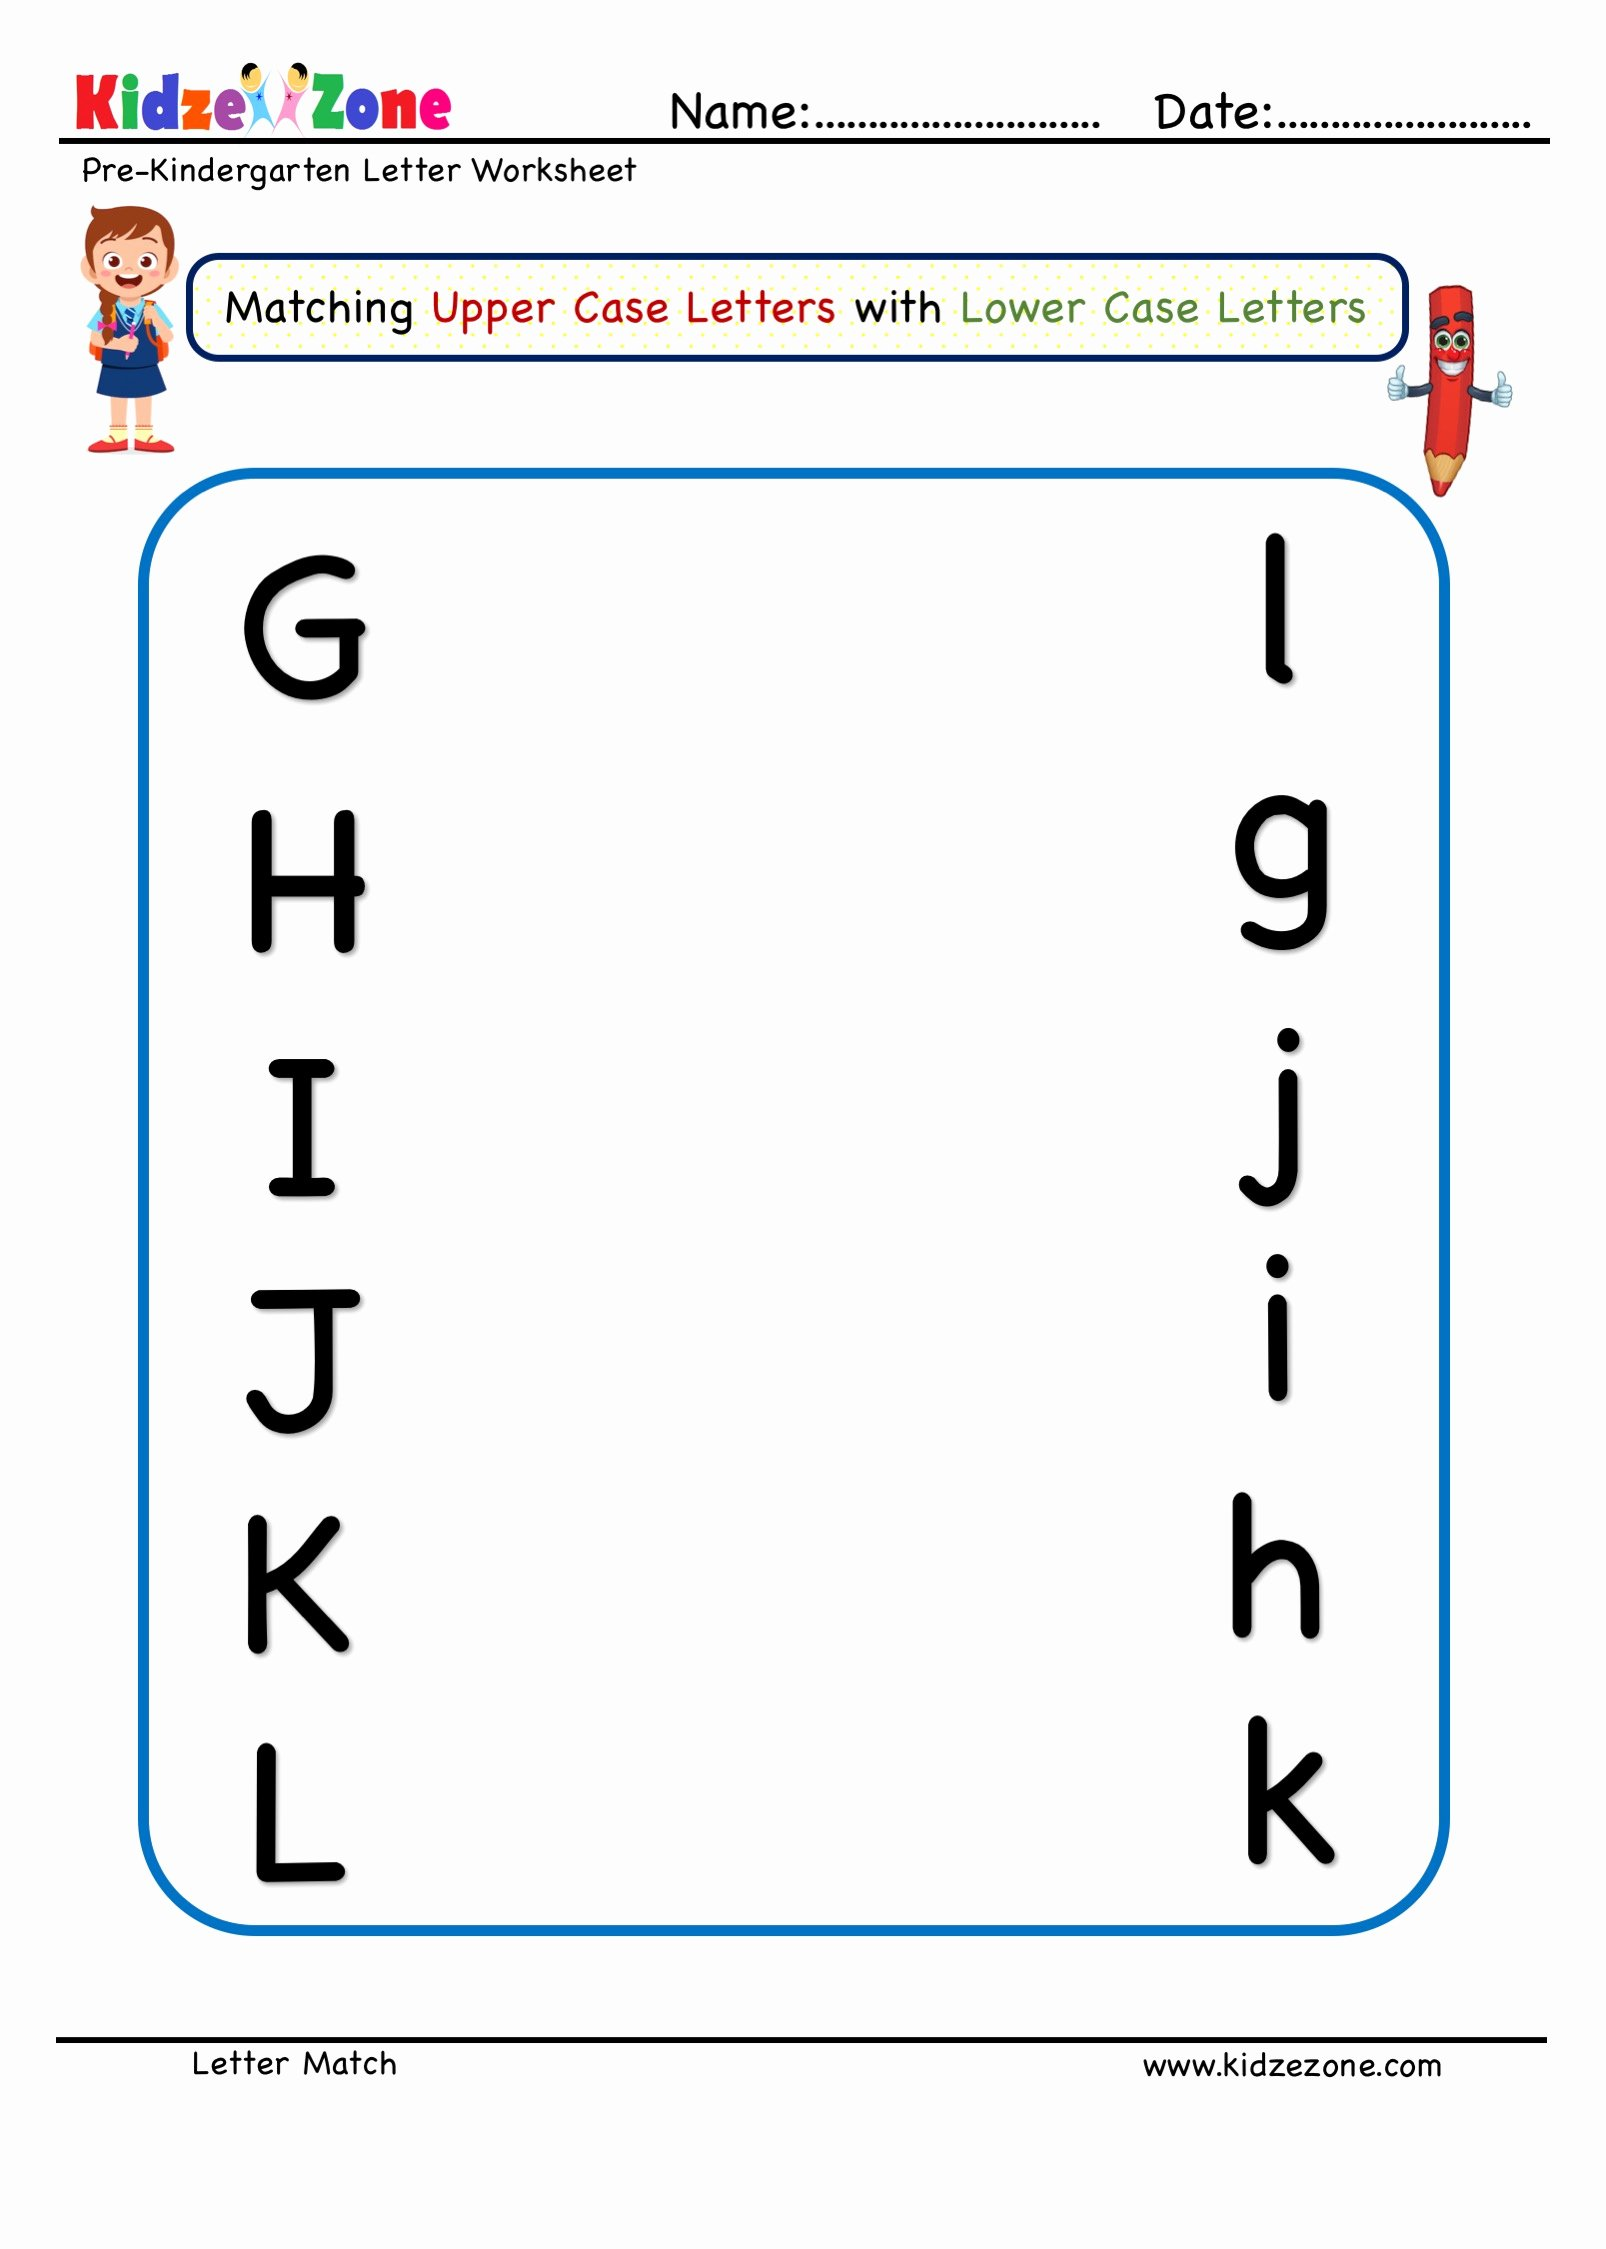 Matching Pictures Worksheets for Preschoolers Fresh Prekindergarten Letter Matching Worksheet Letters M to R